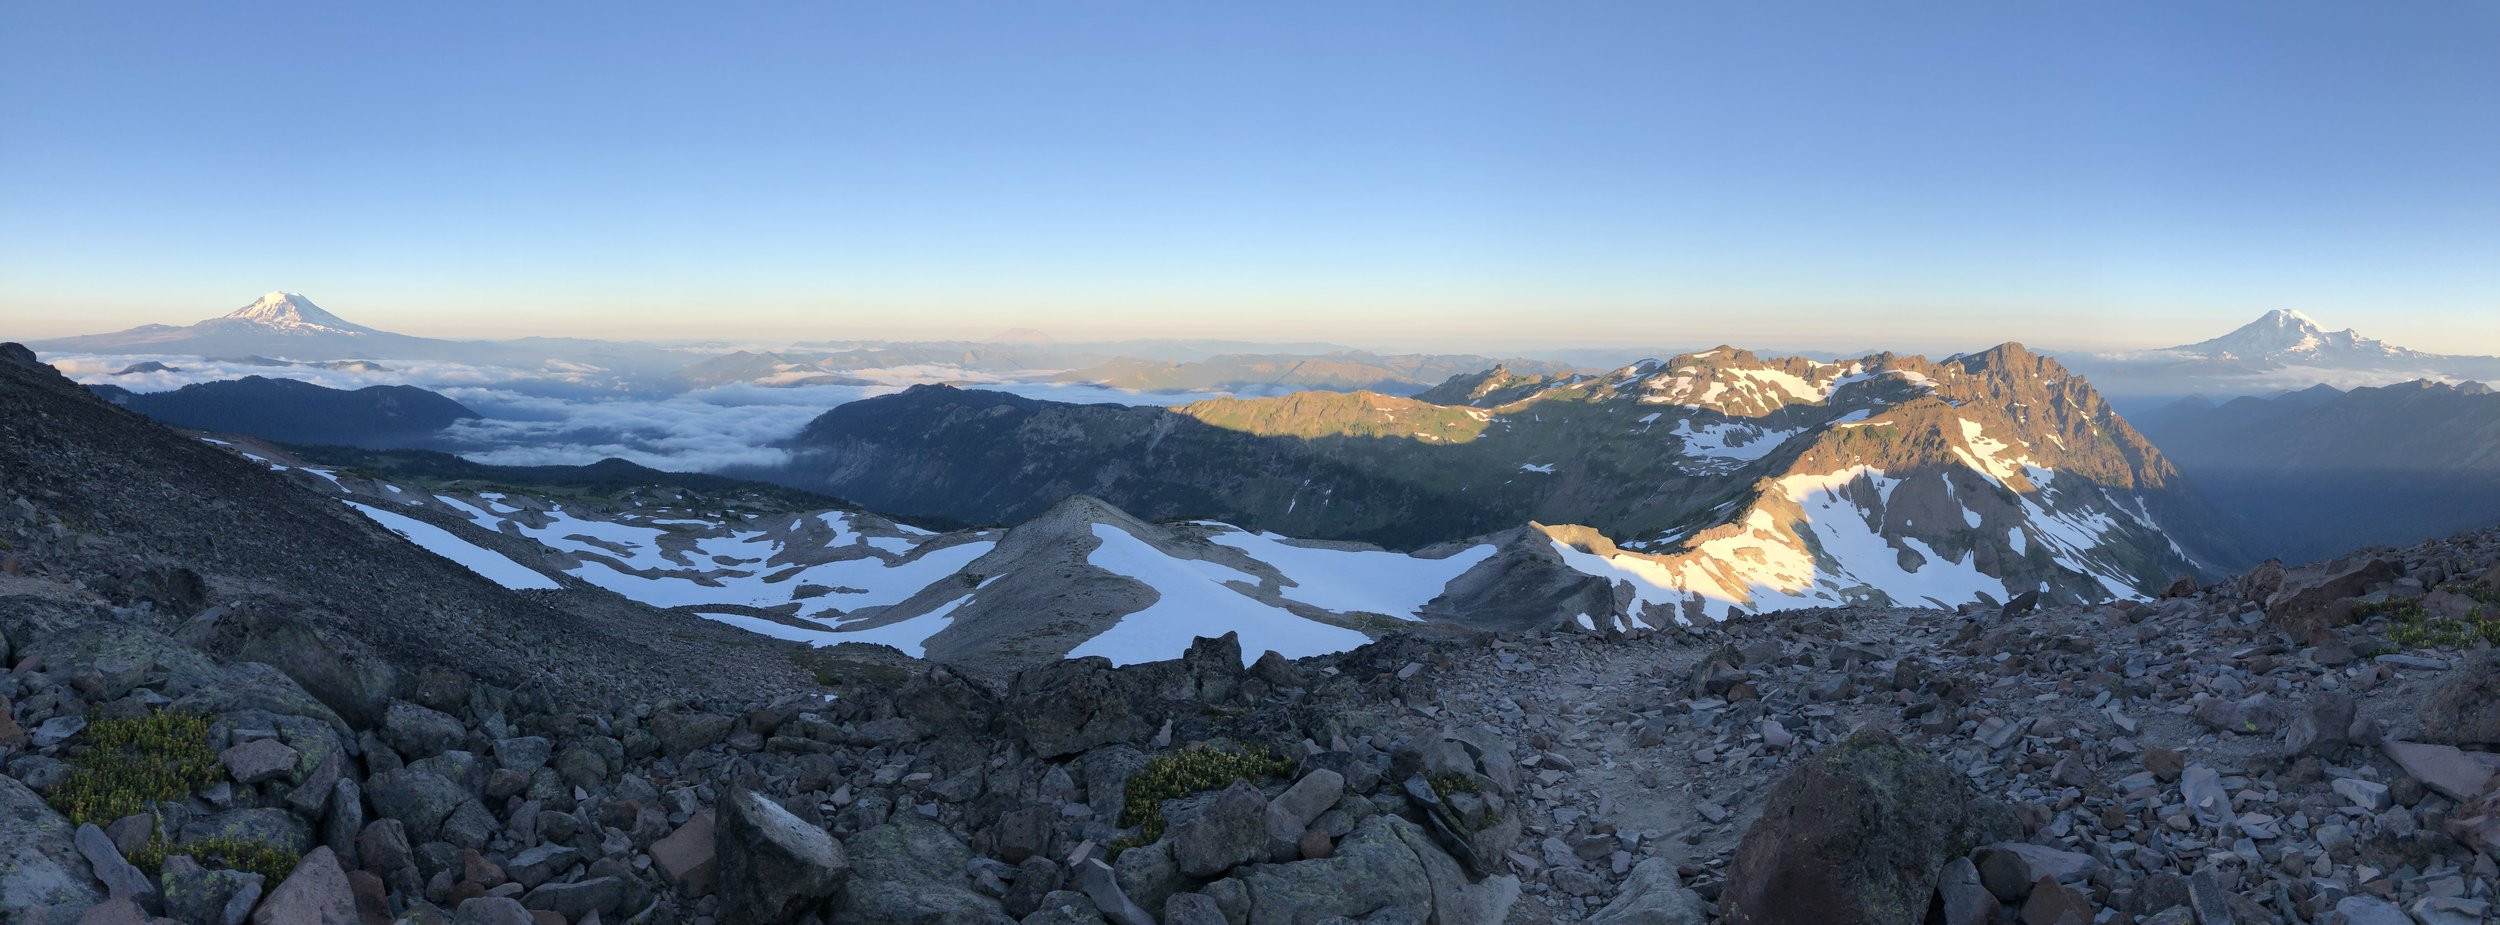 Early morning over Cascadia with Mount Adams on the left, Mount St. Helens in the middle, and Mount Rainier on the right.